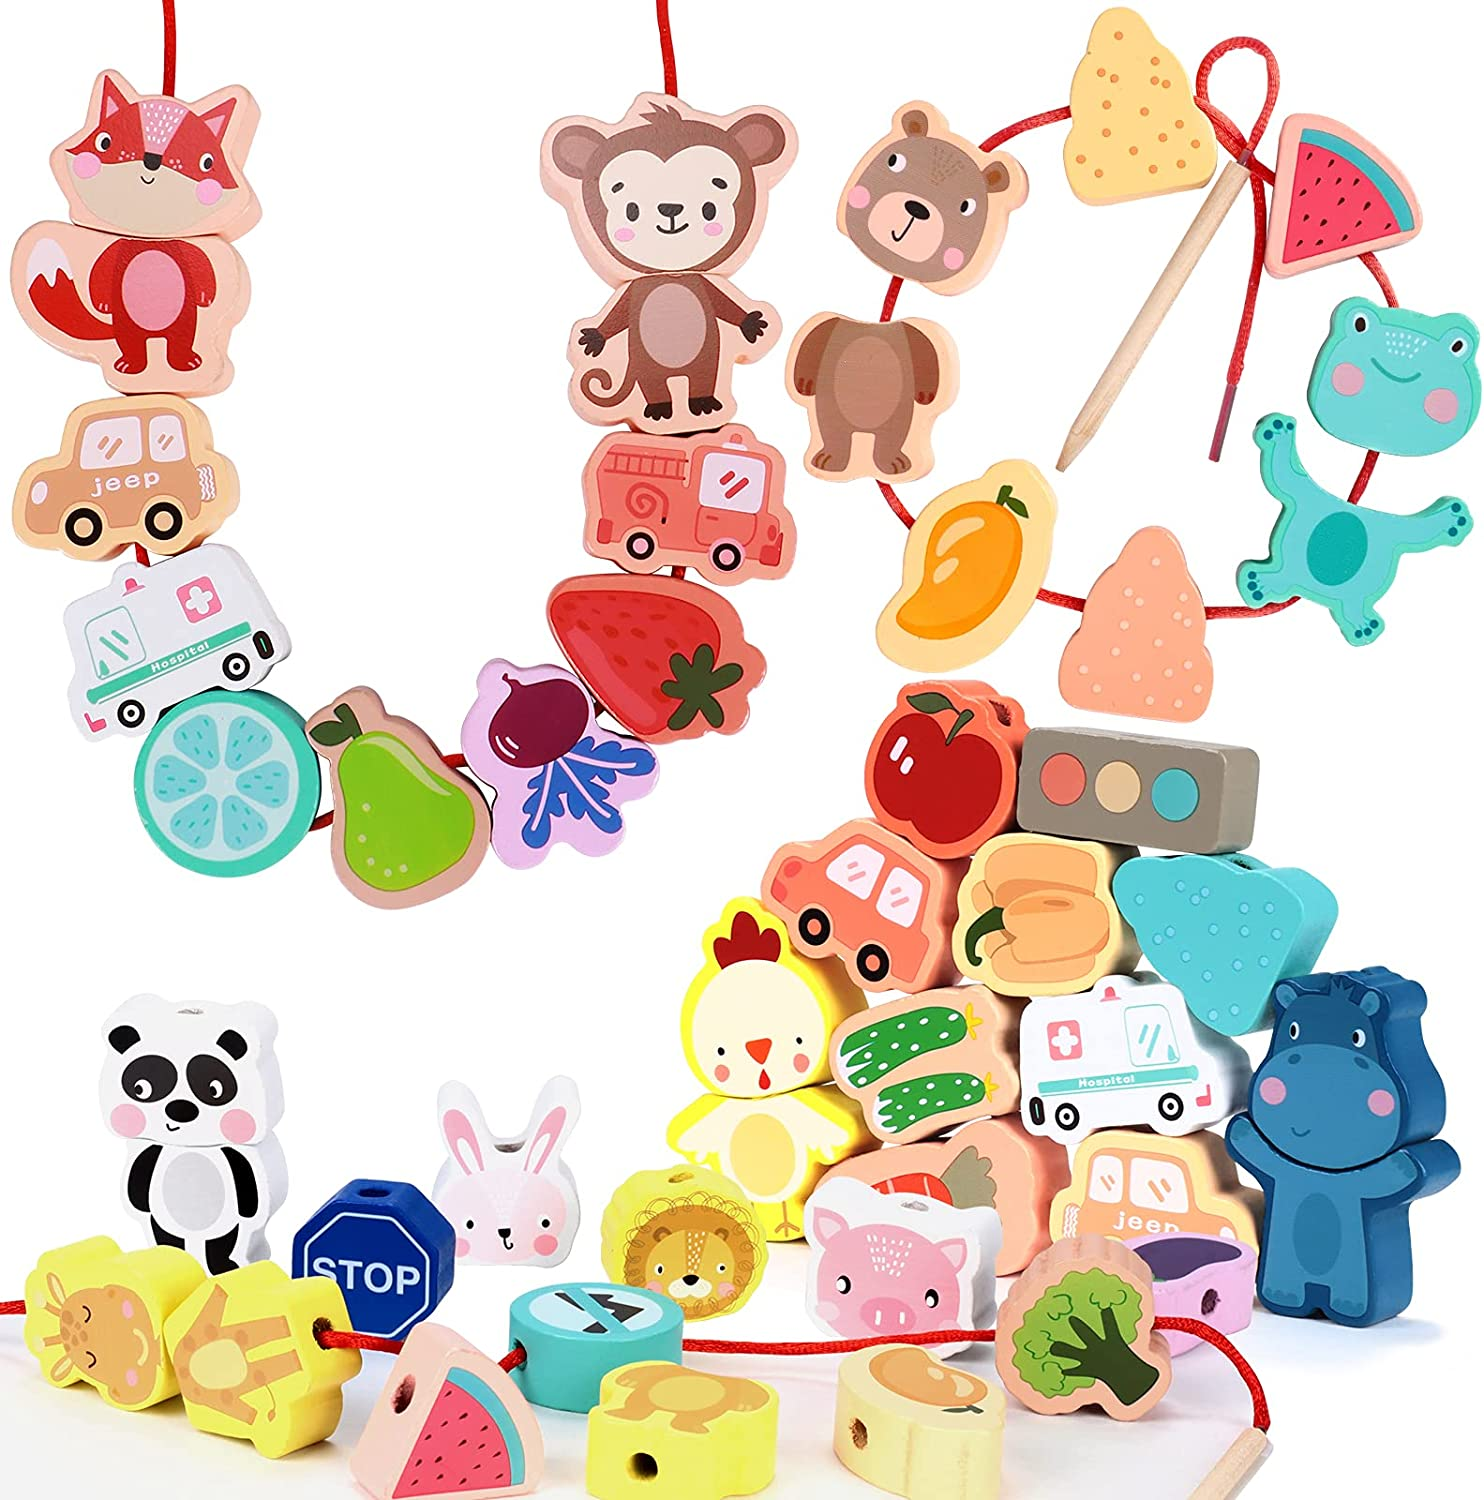 57 PCS Bombing new work Lacing Beads Wooden Threading Animal String Animer and price revision Primary